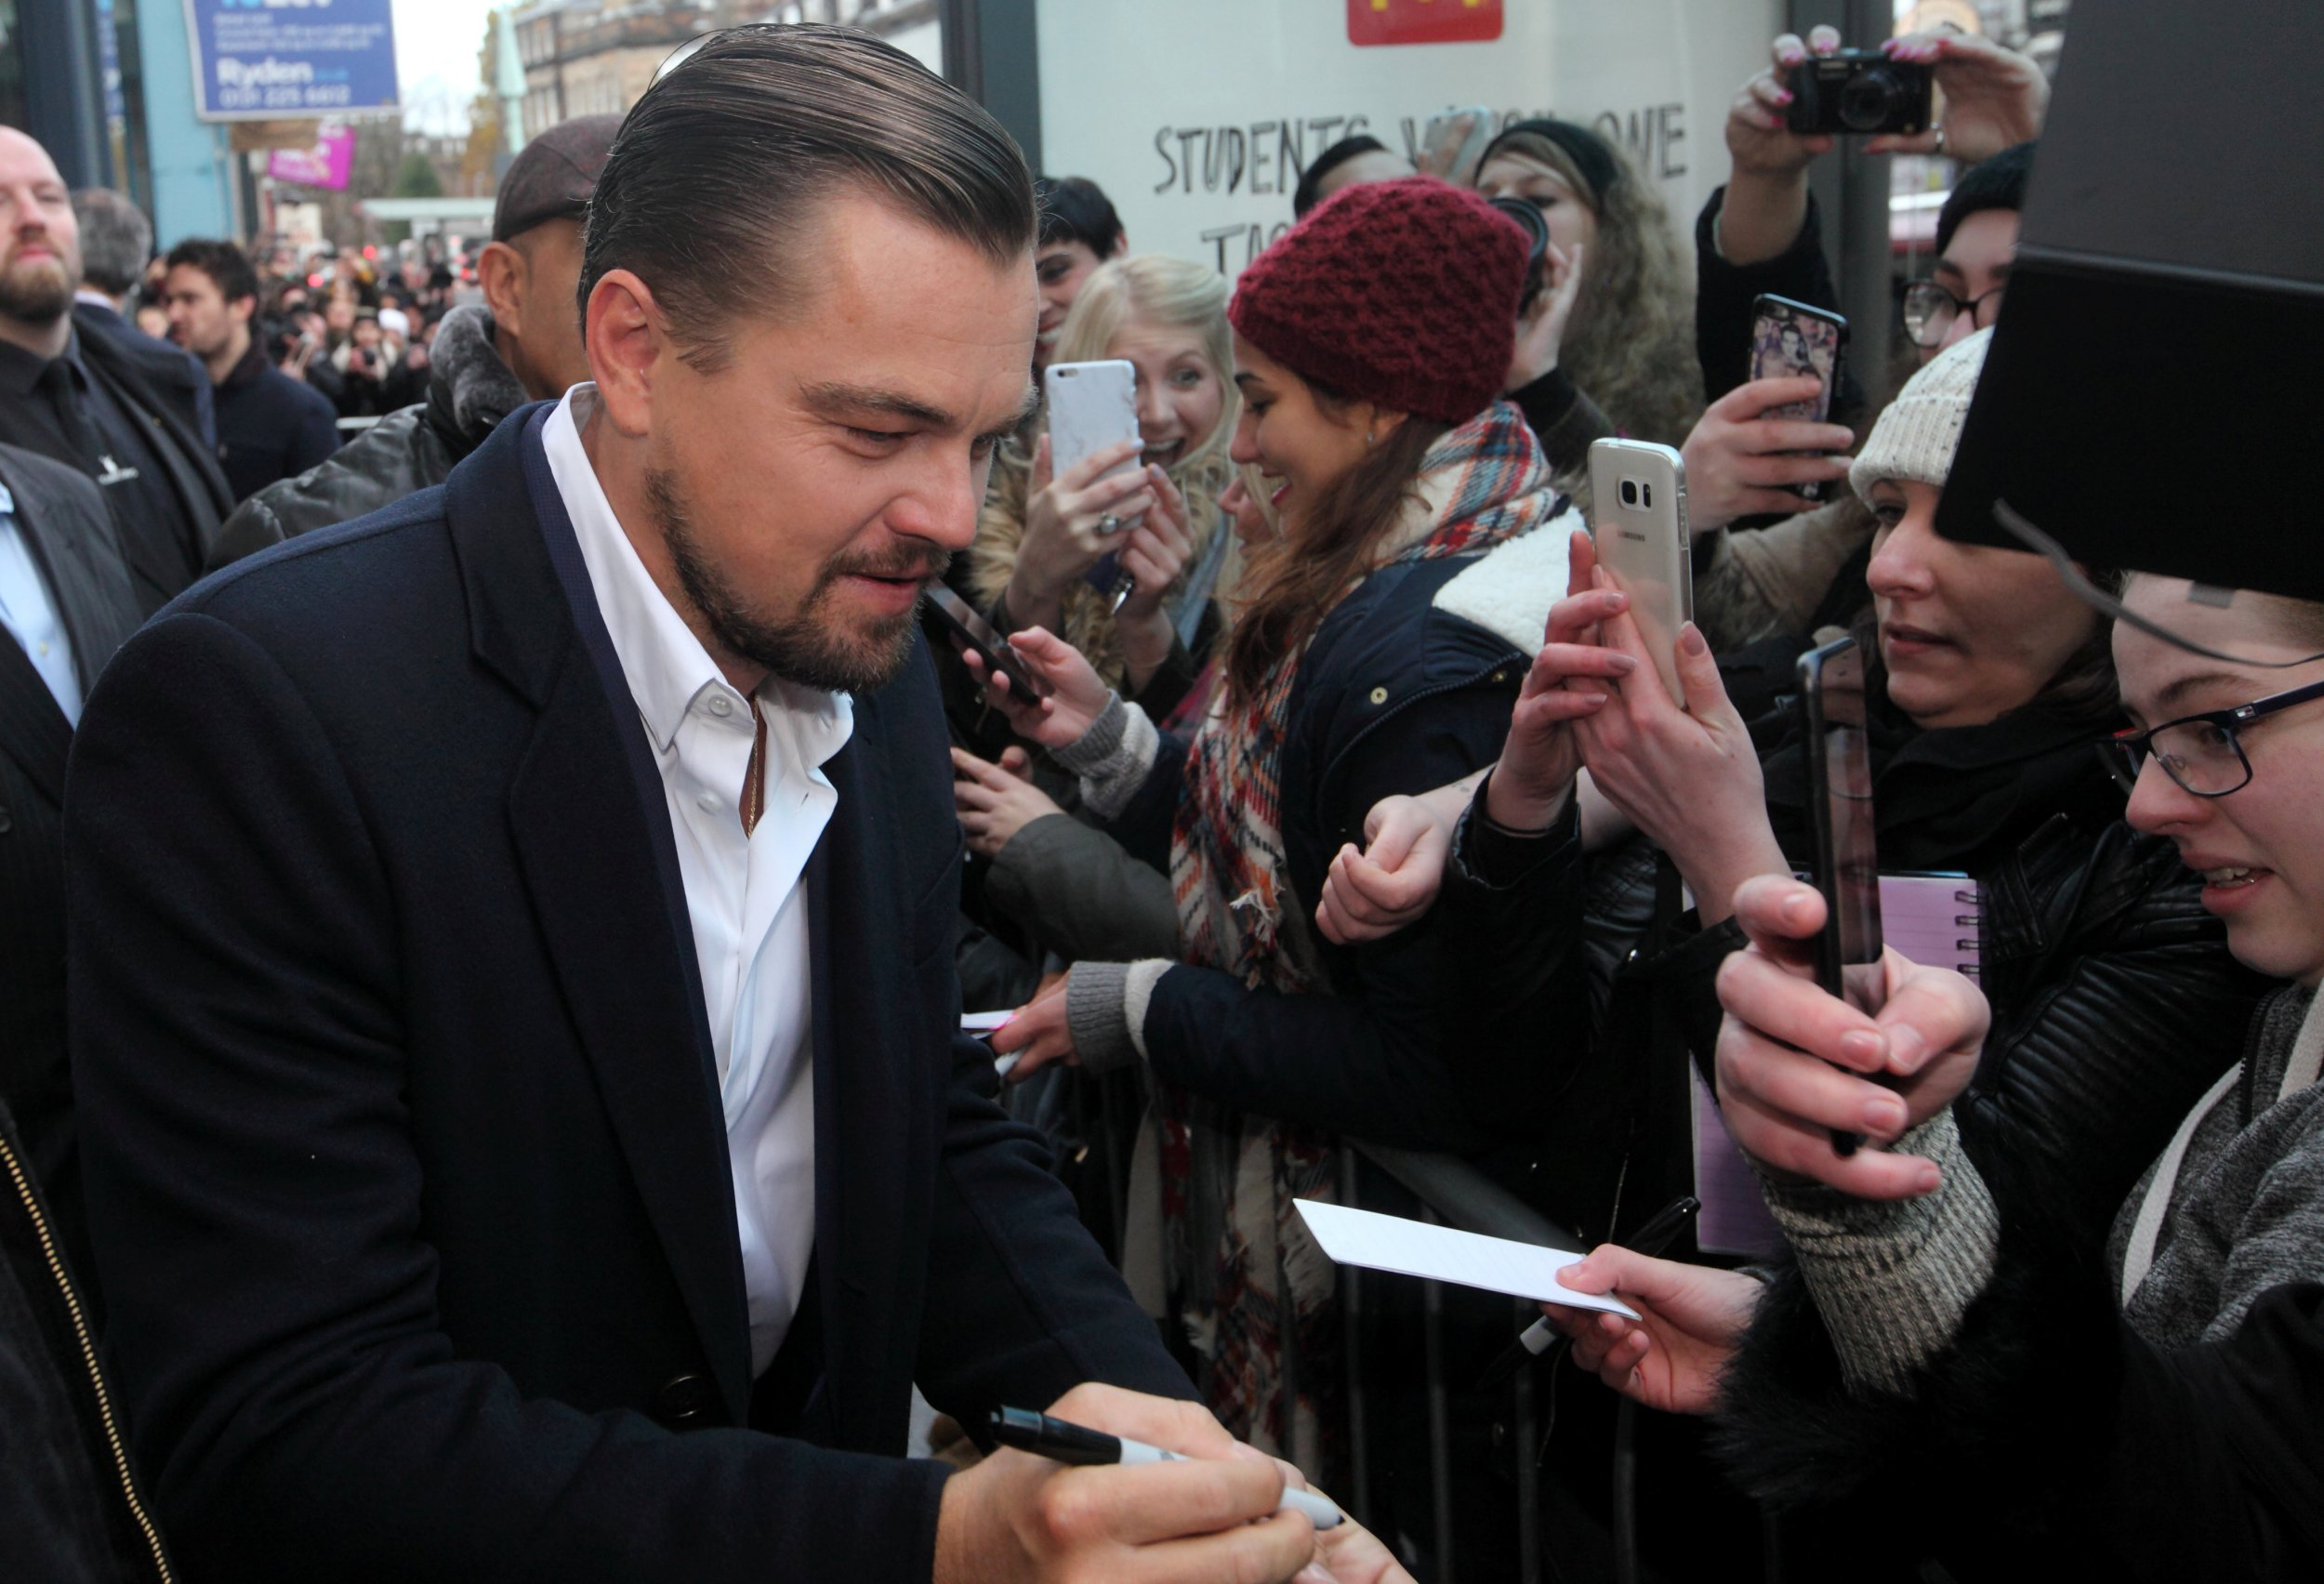 Leonardo DiCaprio has arrived in Edinburgh and – shock horror – he's NOT surrounded by blonde models